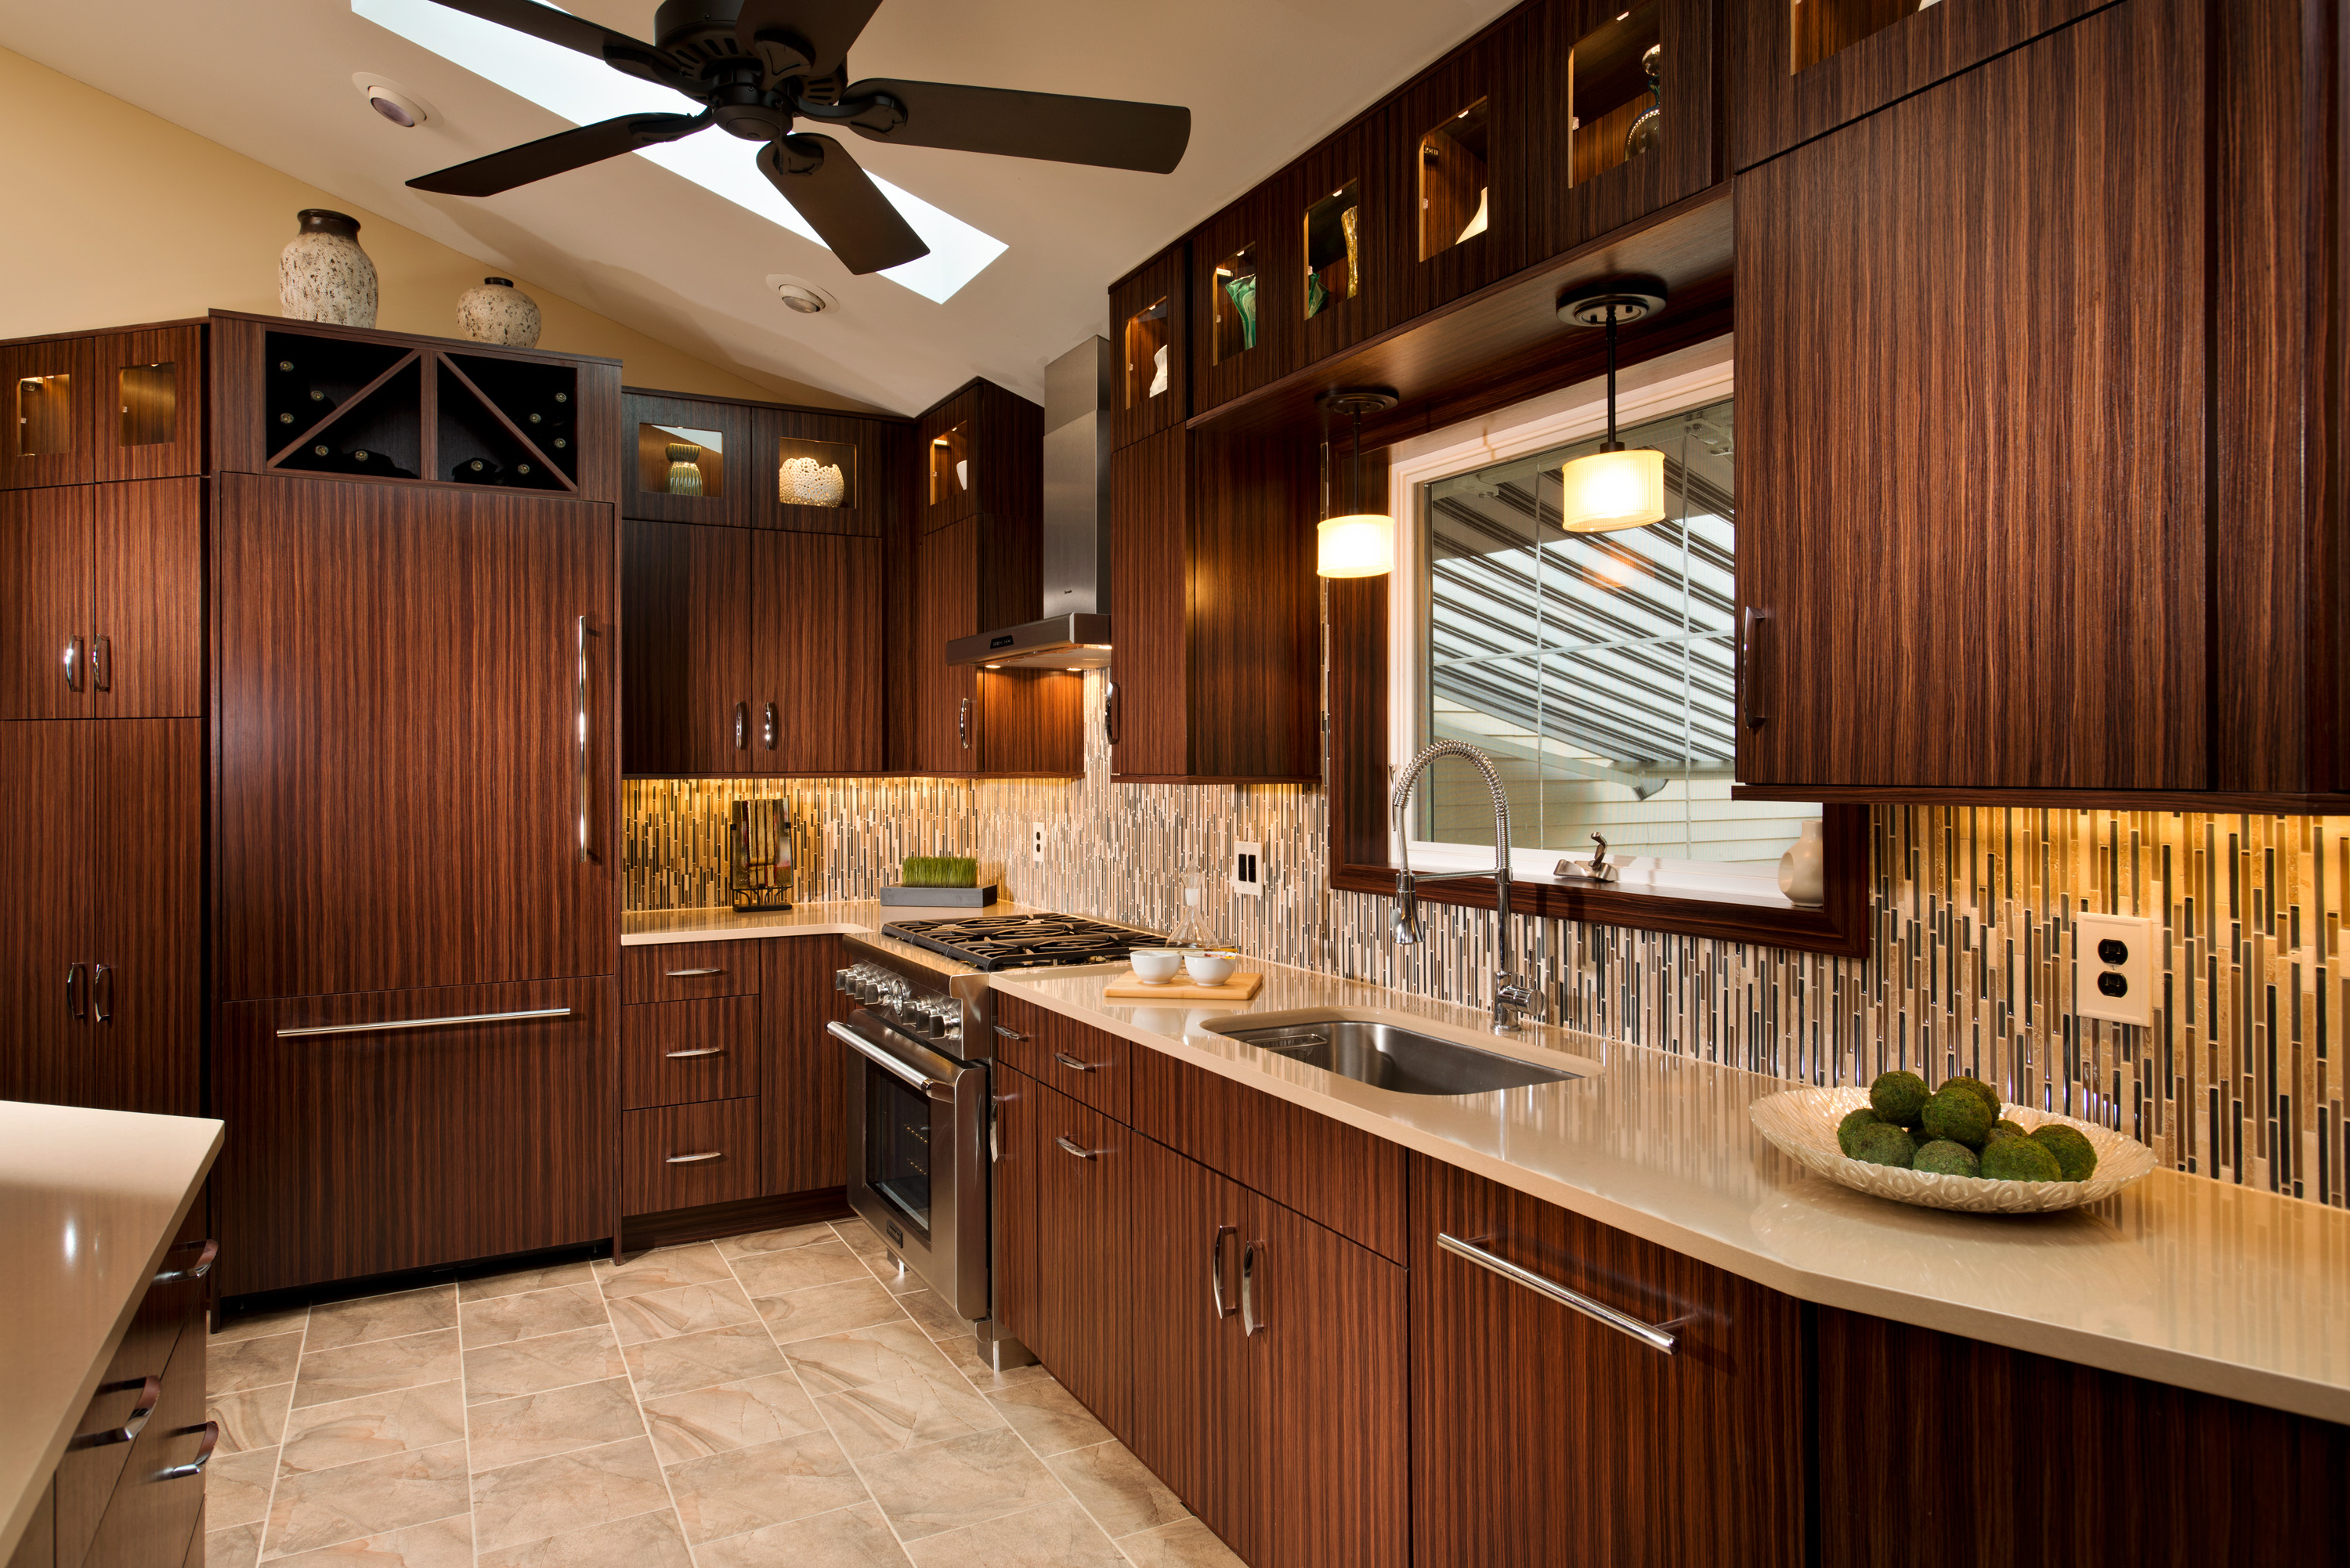 Kitchen Store In House Kitchen And Bath World  Custom Kitchen Design  Bathroom